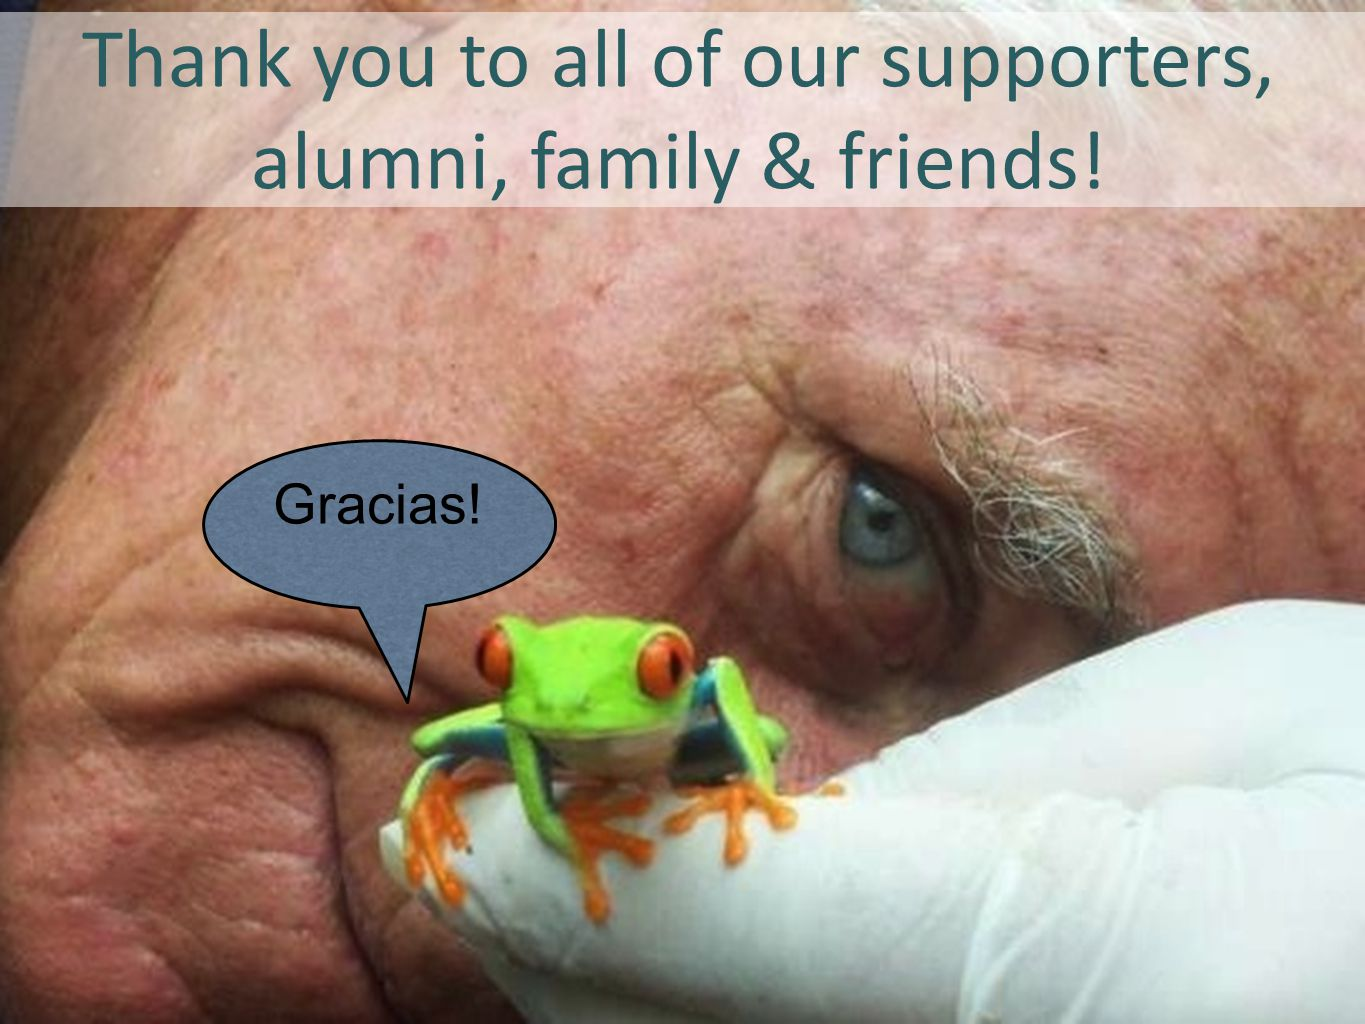 Gracias! Thank you to all of our supporters, alumni, family & friends!